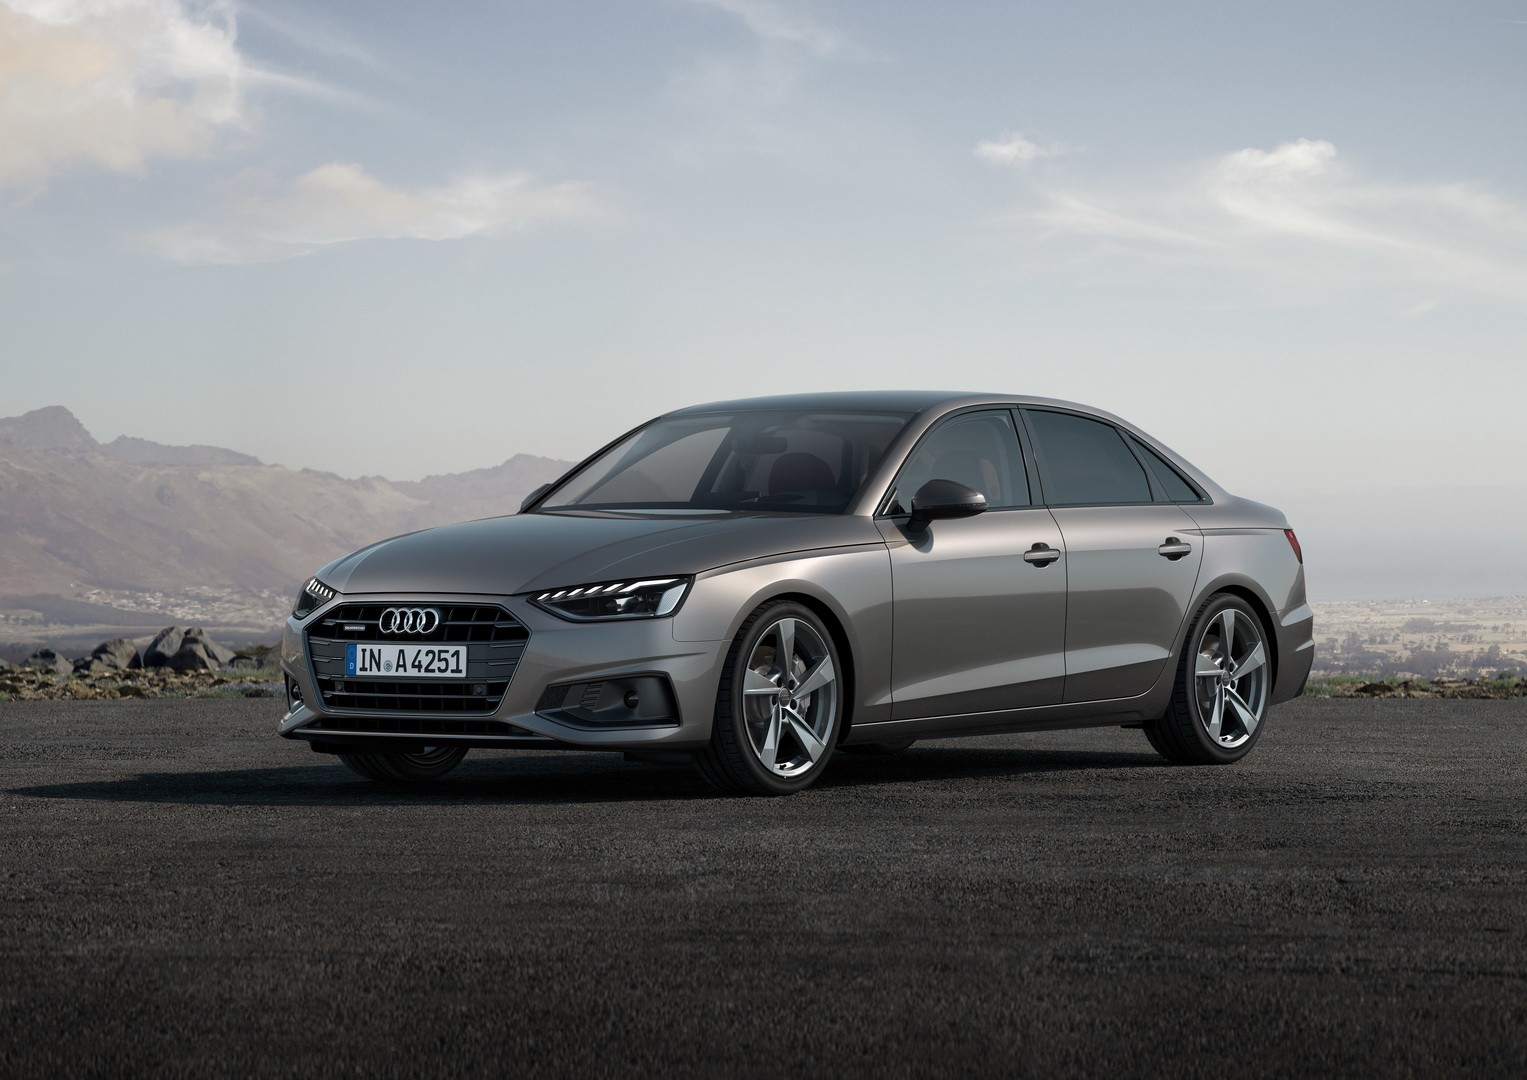 all-new-2023-audi-a4-wont-go-full-ev-just-yet-will-stick-with-gasoline-and-diesel-power_3.jpg